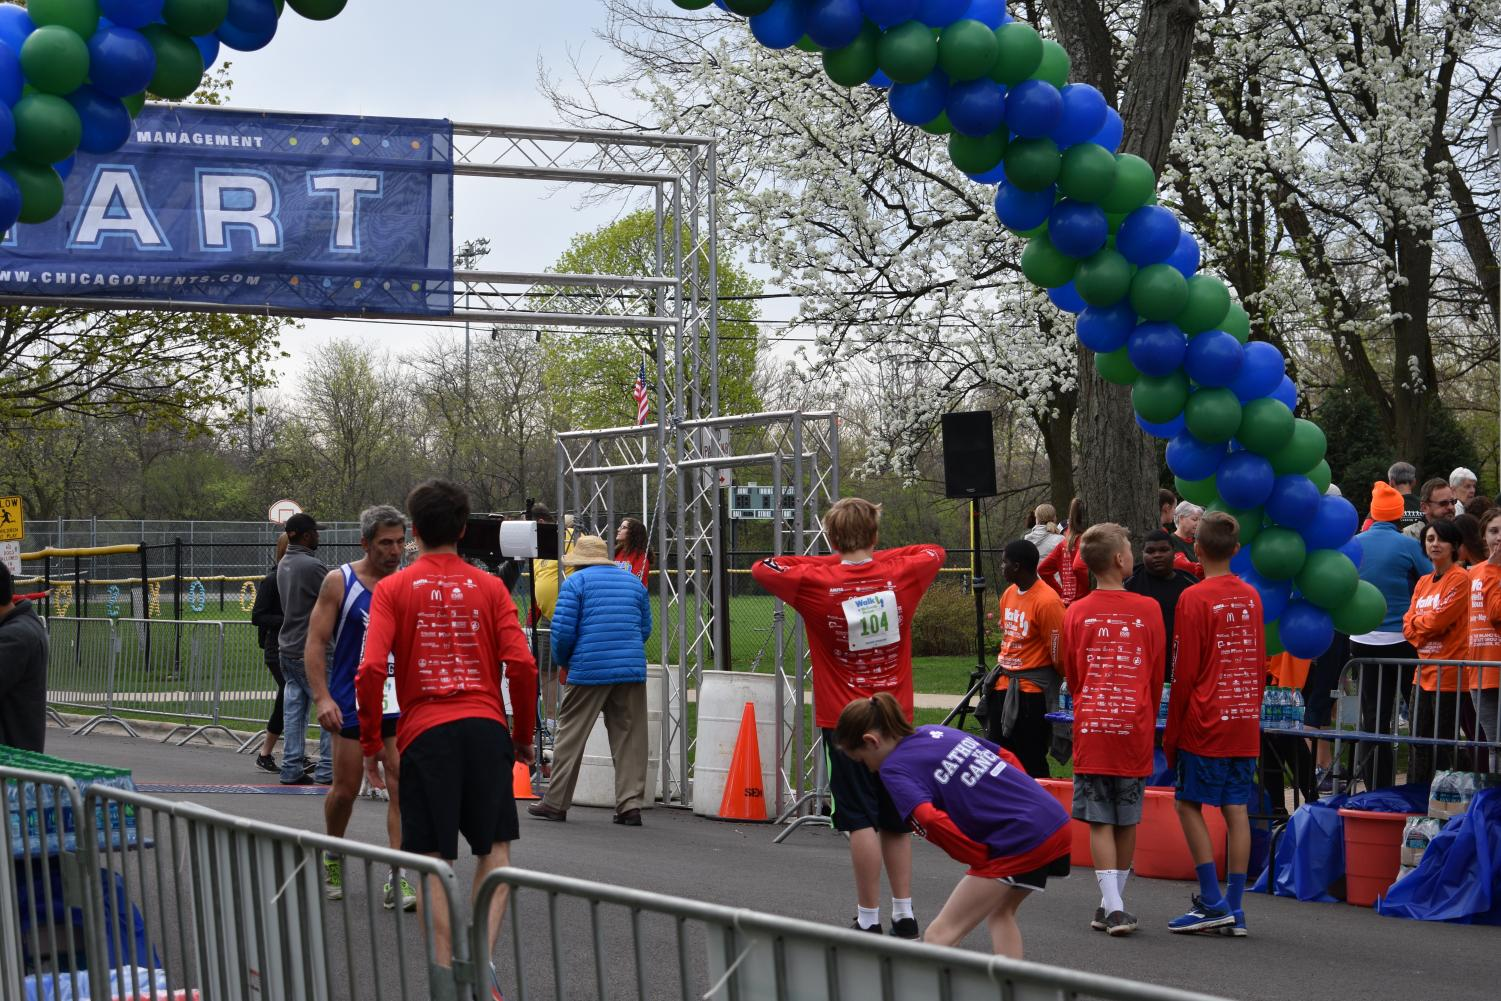 Runners stretch and warm up for the race they were going to participate in. The 5k runners and 3k walkers all lined up at 8:30 a.m. to begin the race.